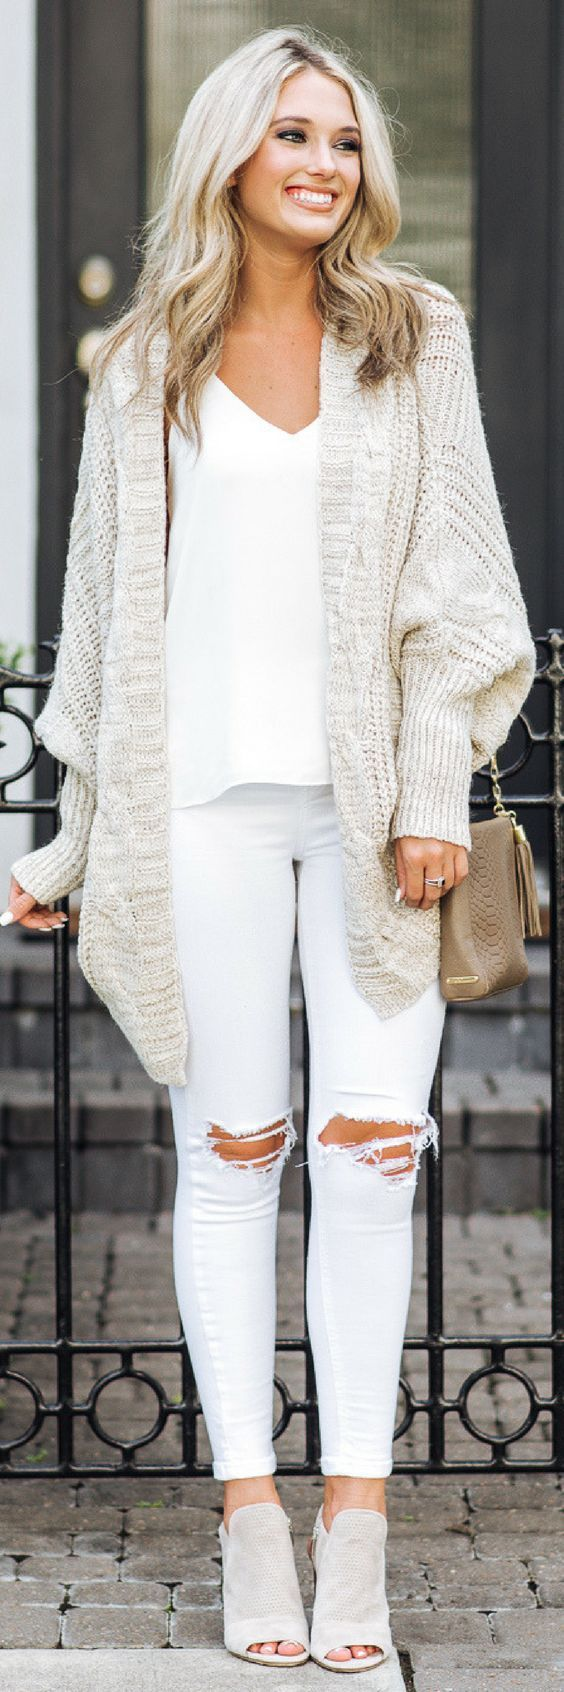 Like the sweater. No all white for me. Shoes are cuuuute.